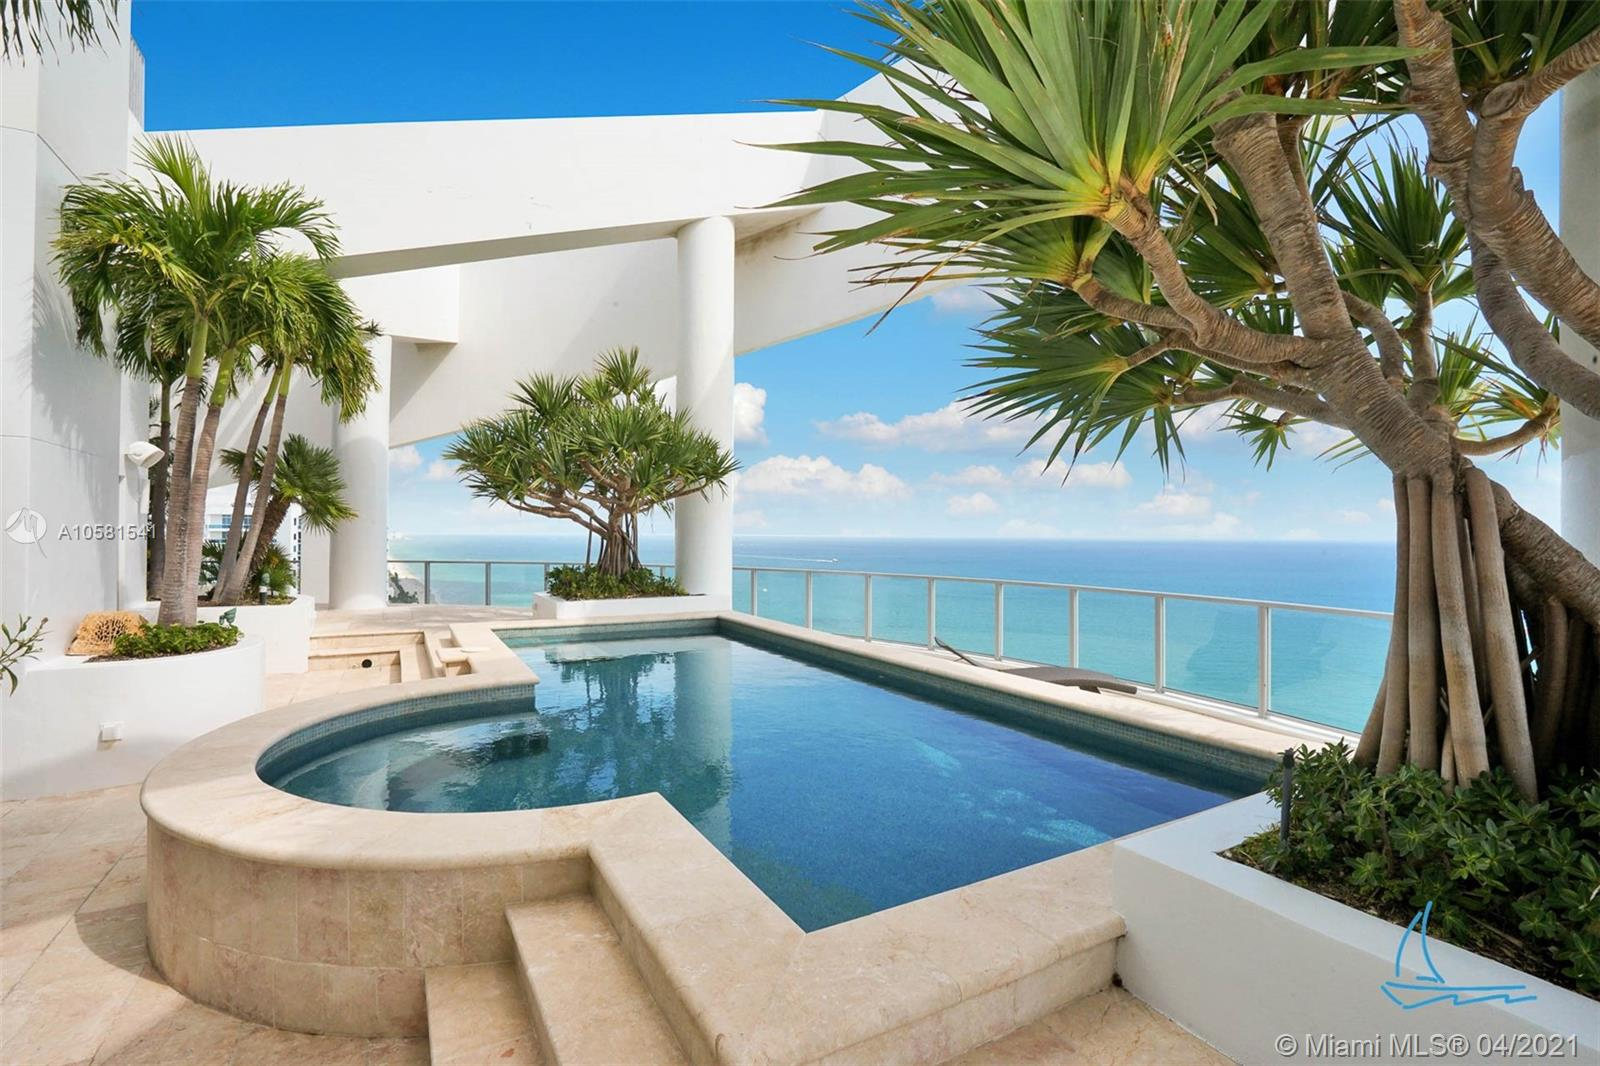 This rare and significant 3 floor PH will take your breath away. Enter through a private elevator to a grand view of the ocean adorned with a beautiful Chihuly Chandelier and an indoor waterfall spanning 2 floors in height. The countertops and design of this mansion in the sky have been  conceptualized and brought to life bringing South Floridas natural beauty of the ocean indoors. Other features of this gorgeous 5 bedroom residence include an in-home, personal, elevator to take you to the 3rd floor where you are enchanted by your own landscaped and light designed terrace with a pool, jacuzzi, and irrigation system. Outside of this gracious living space are 5 parking spots with built-out building entrance, gym, spa, and onsite restaurant.